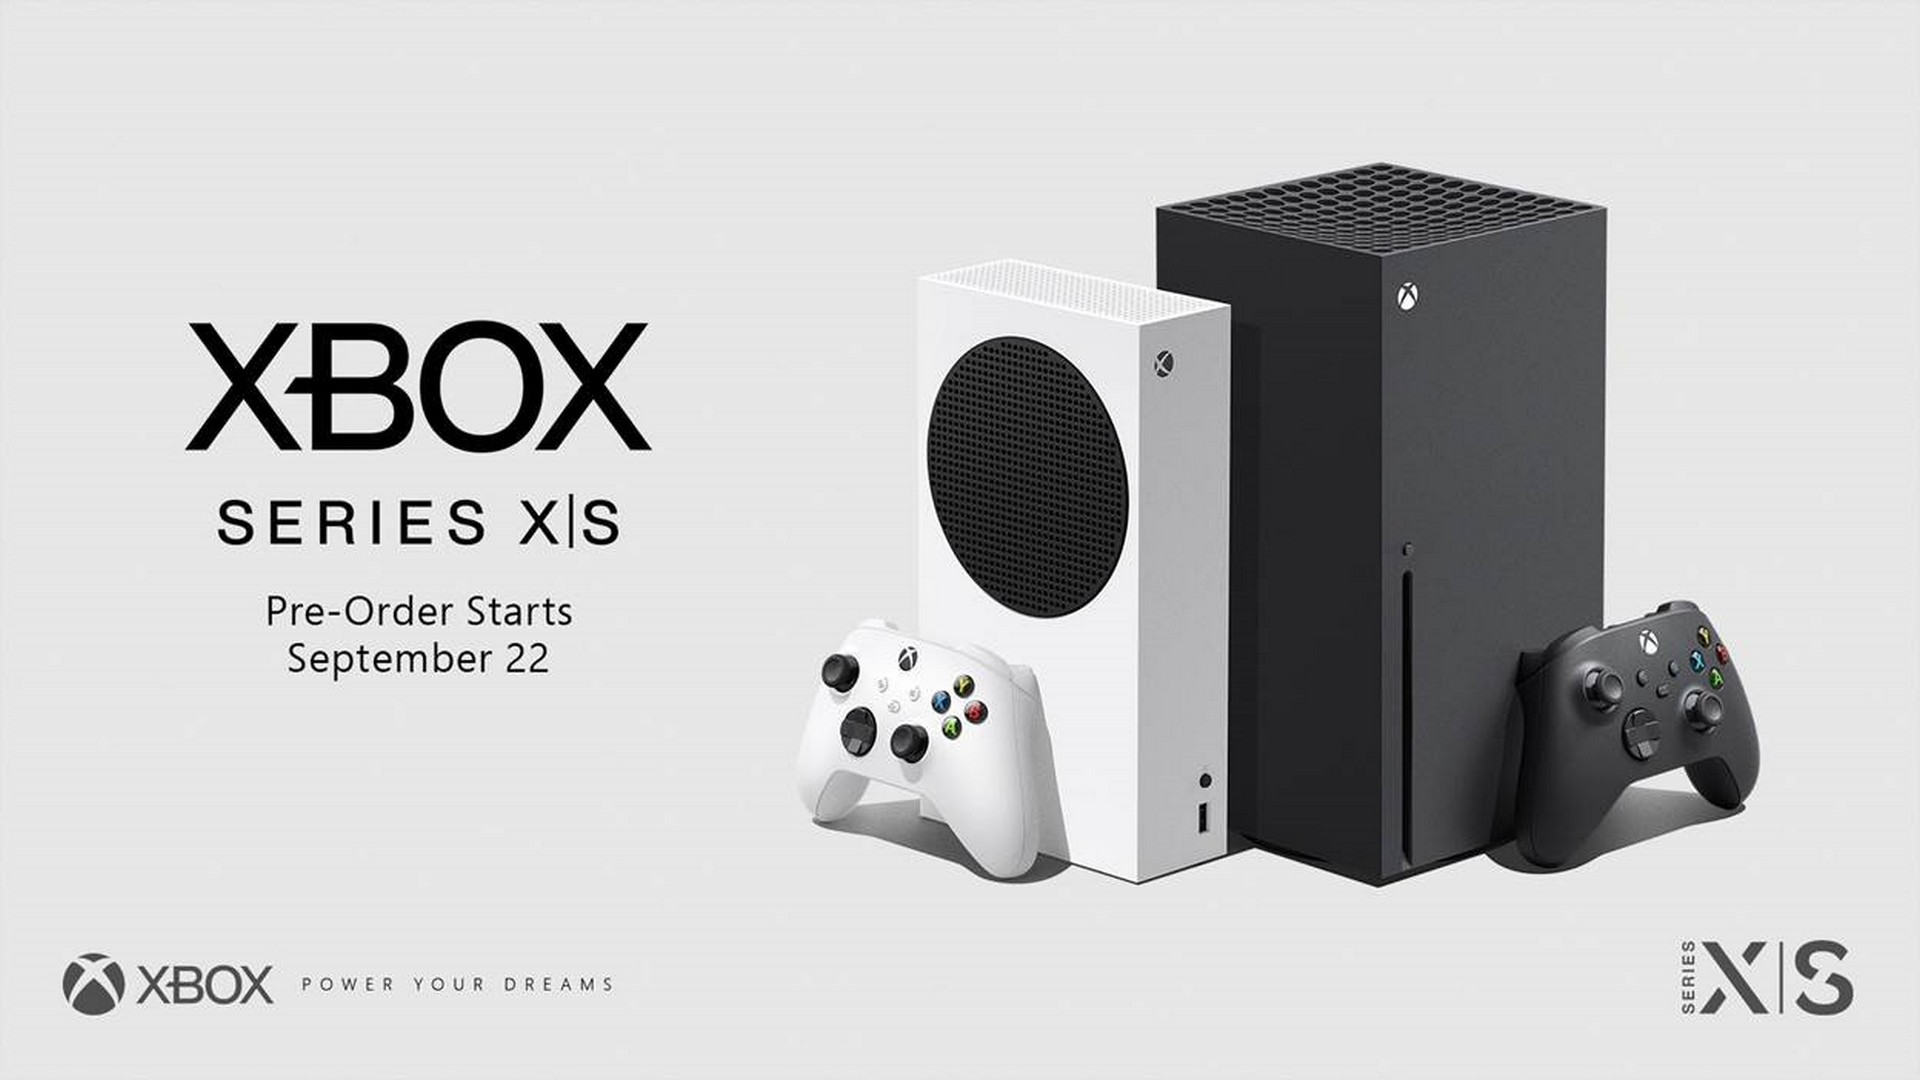 Pre-Order Xbox Series X and Series S Starting Tuesday, September 22